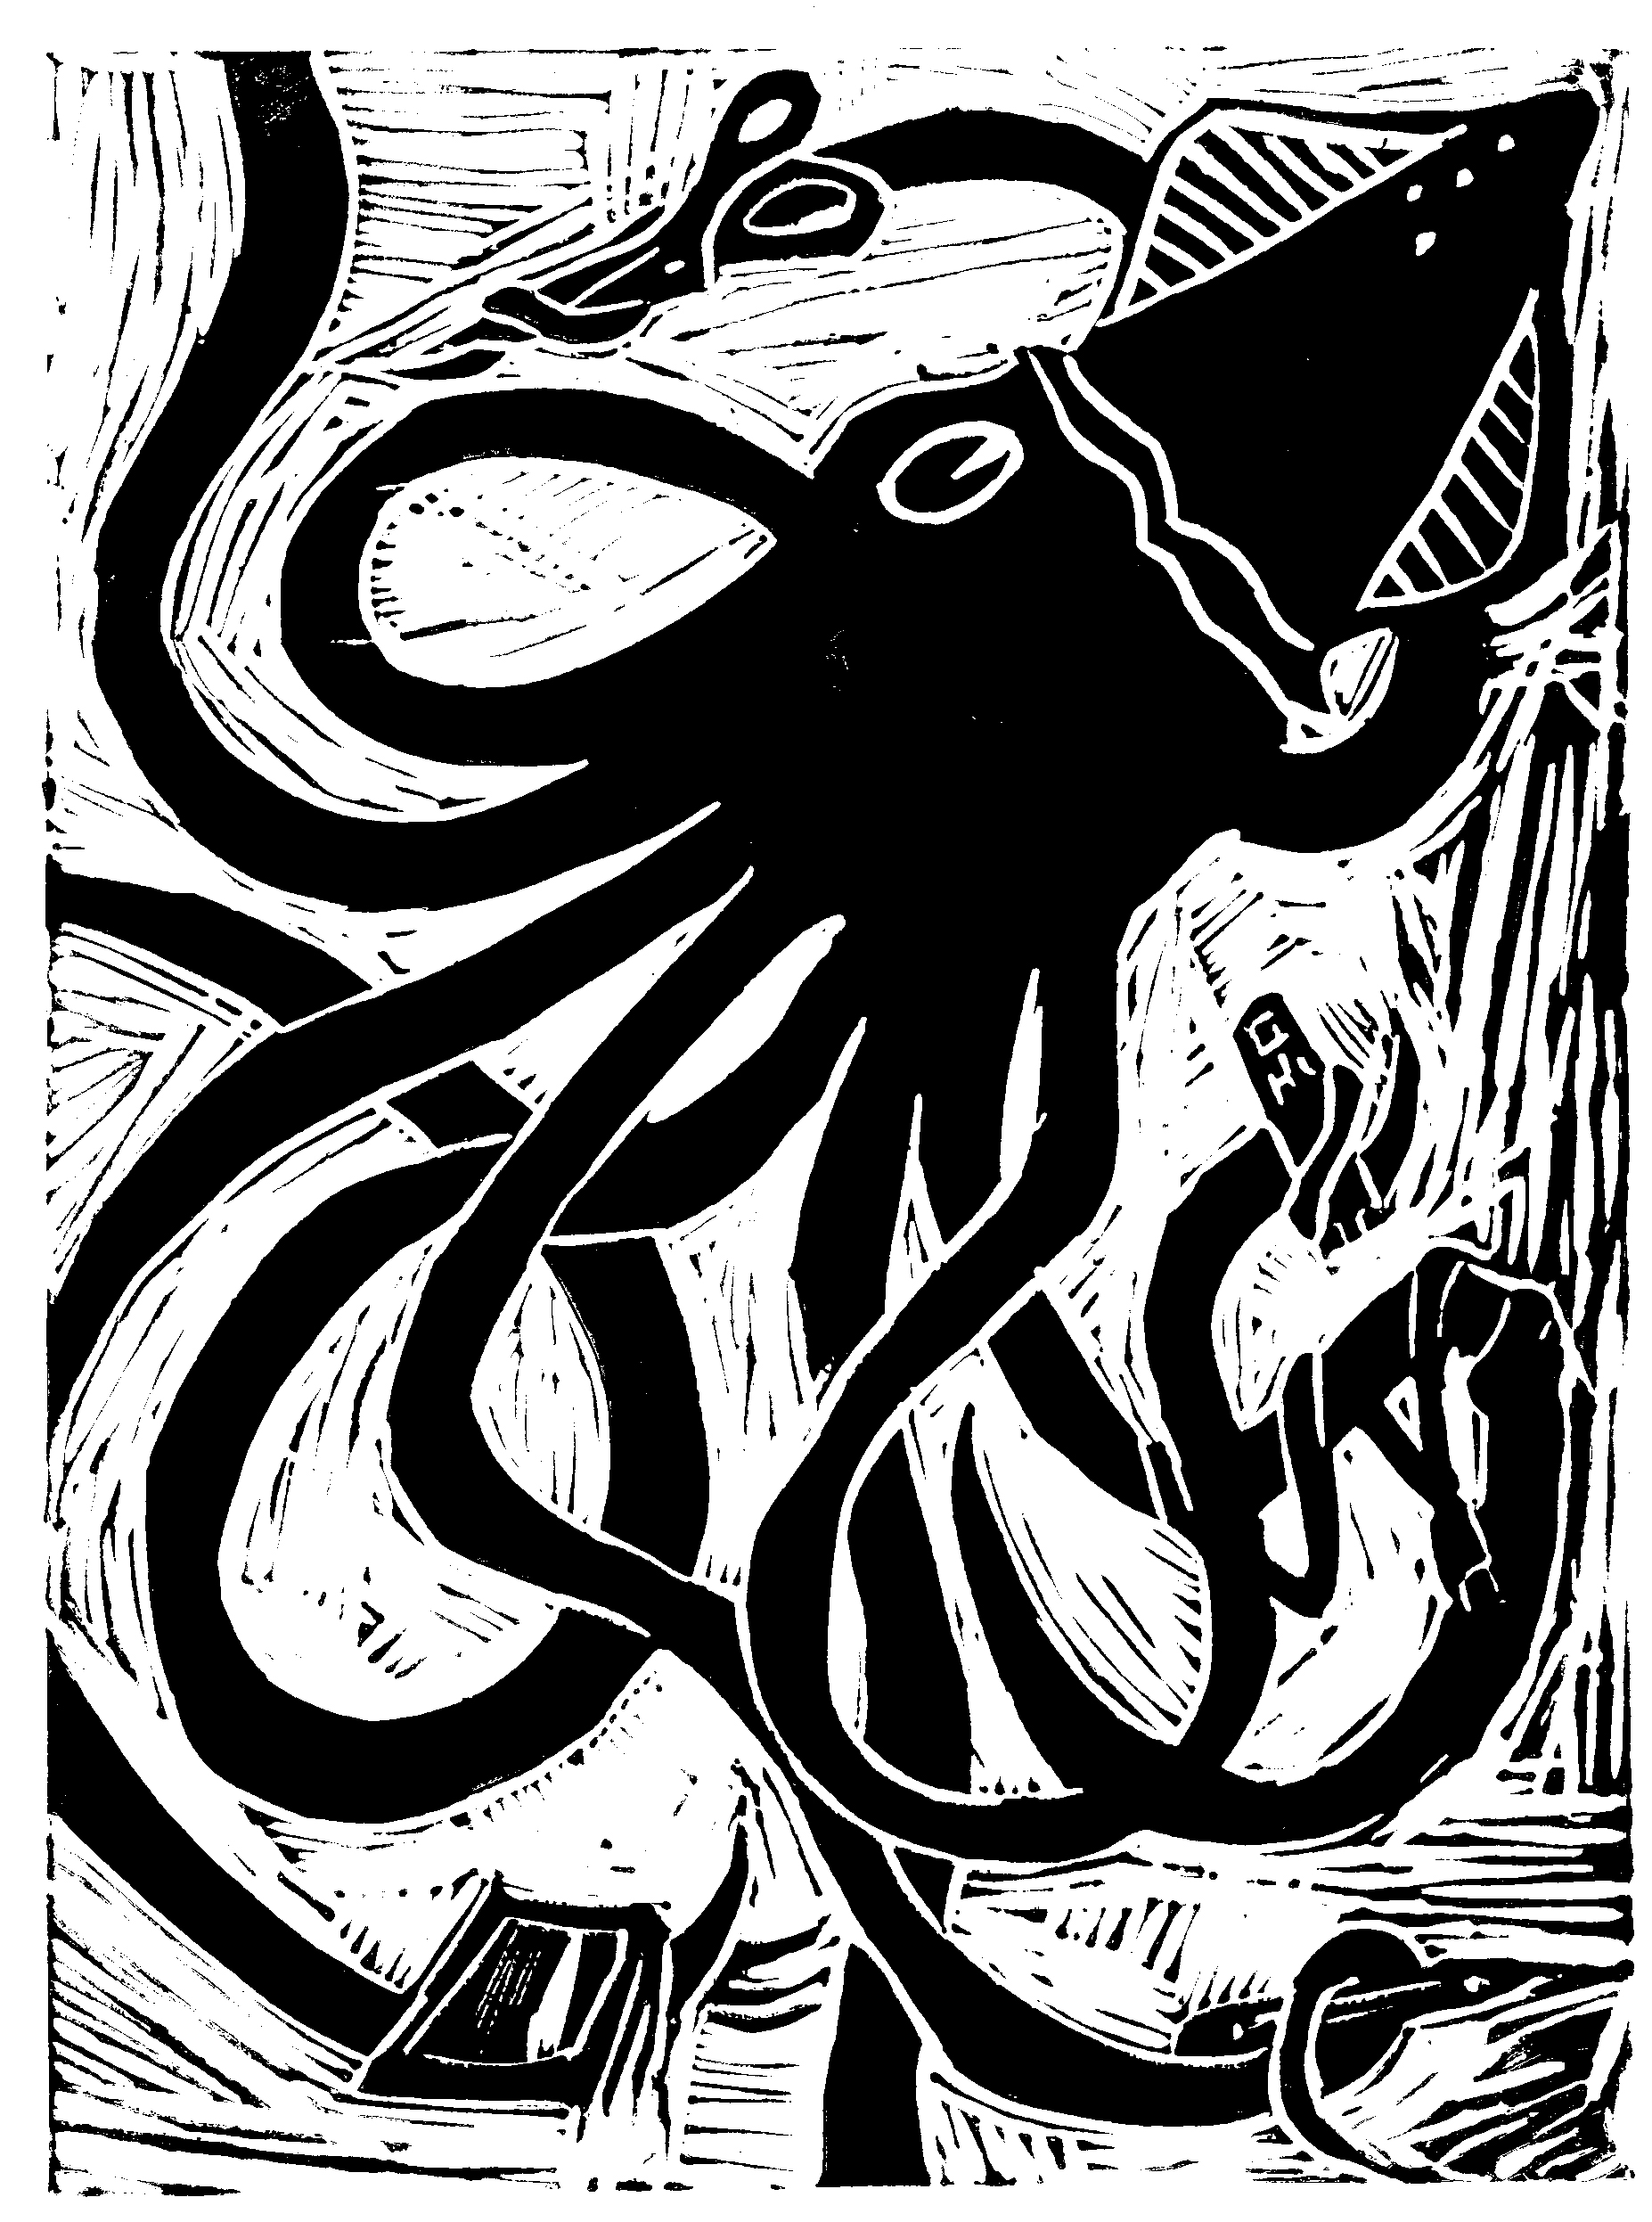 zine squid